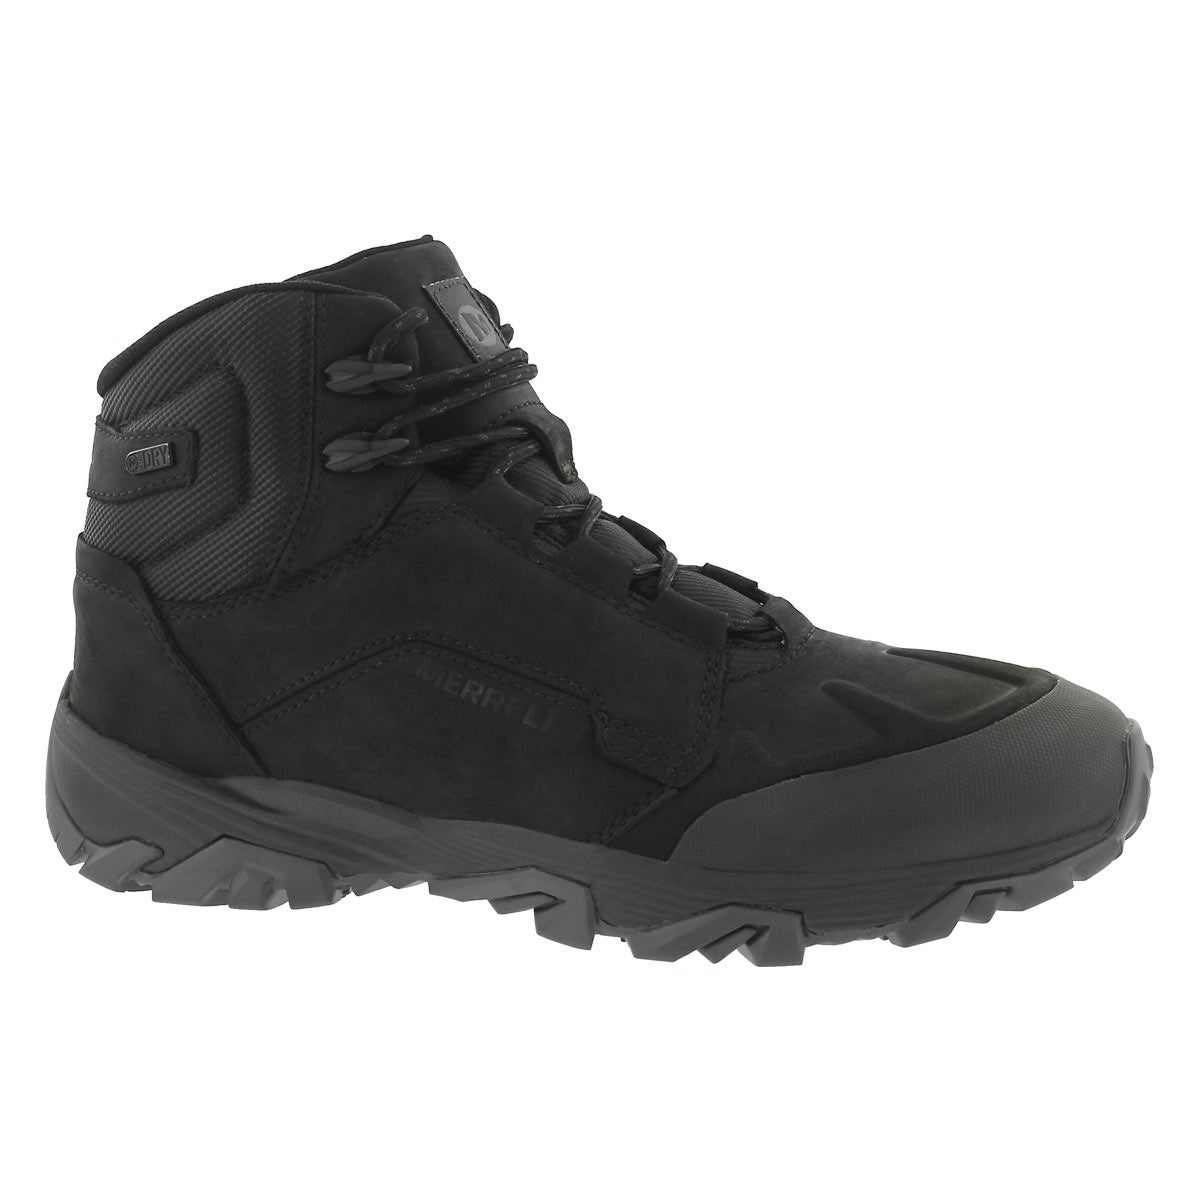 Men's COLDPACK ICE black wtpf winter boots